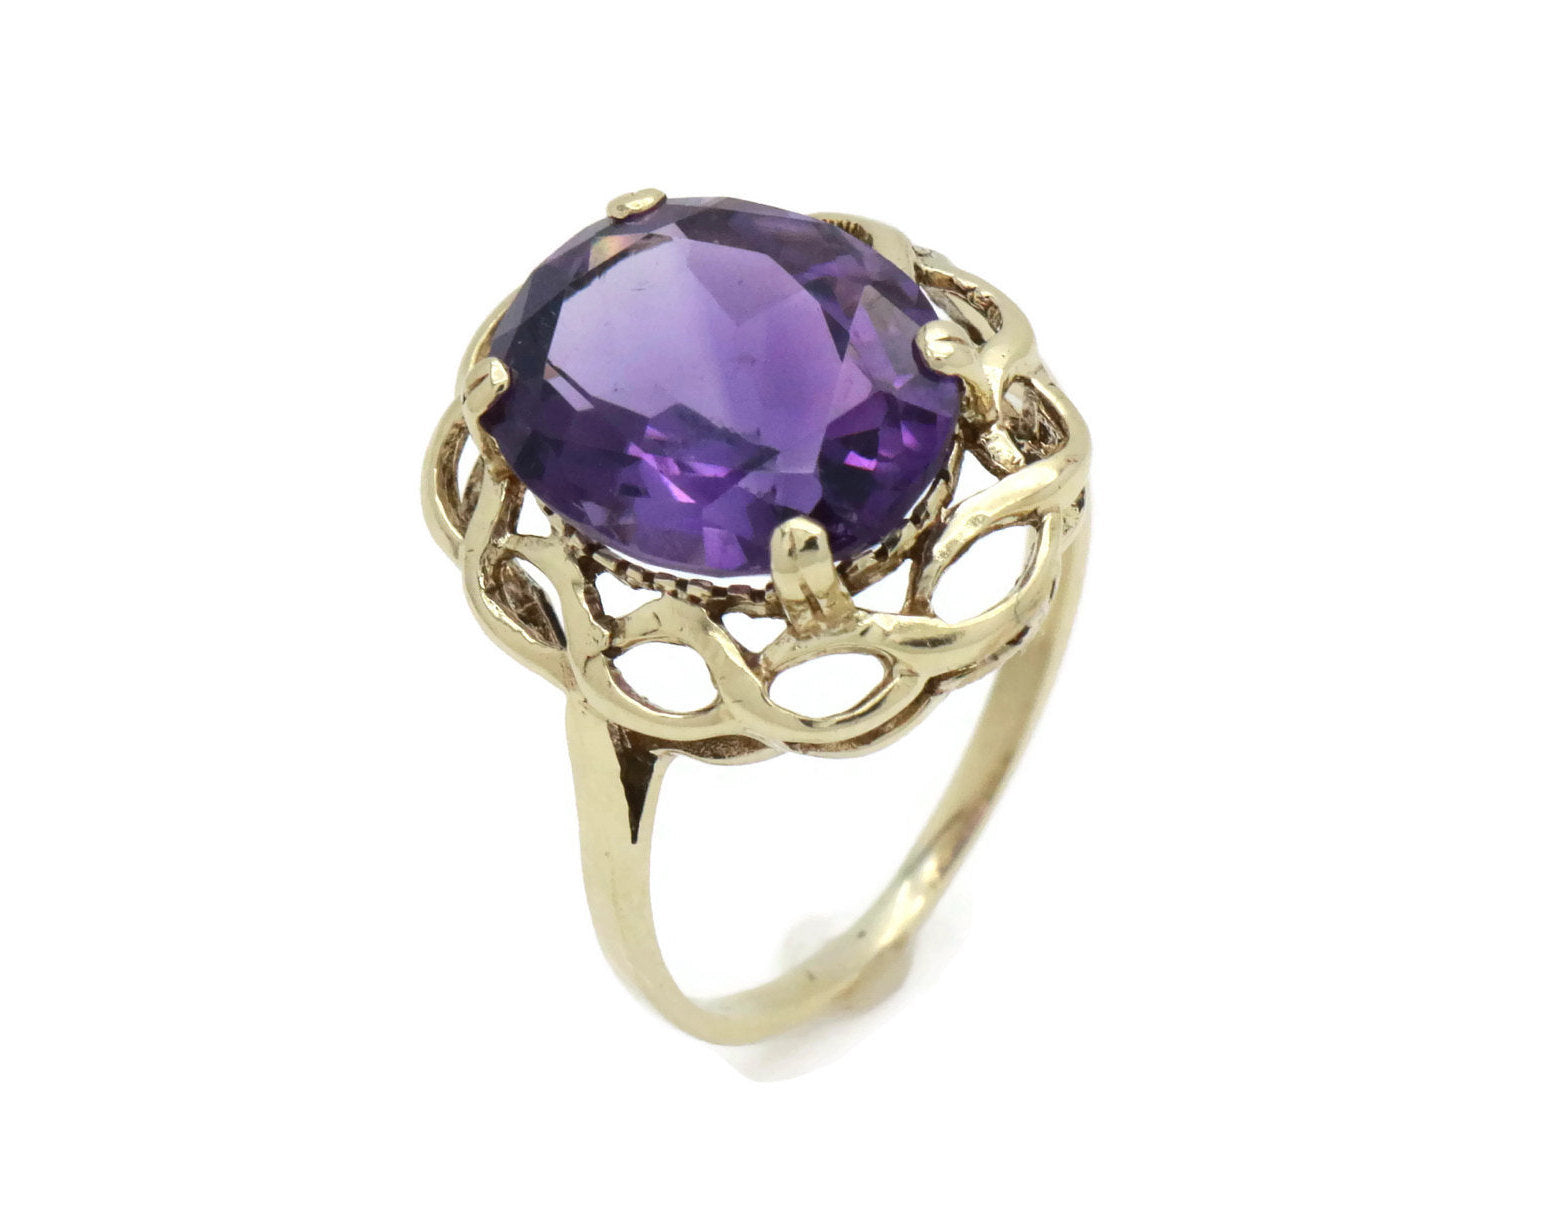 Vintage Amethyst Solitaire Cocktail Ring 9ct Gold